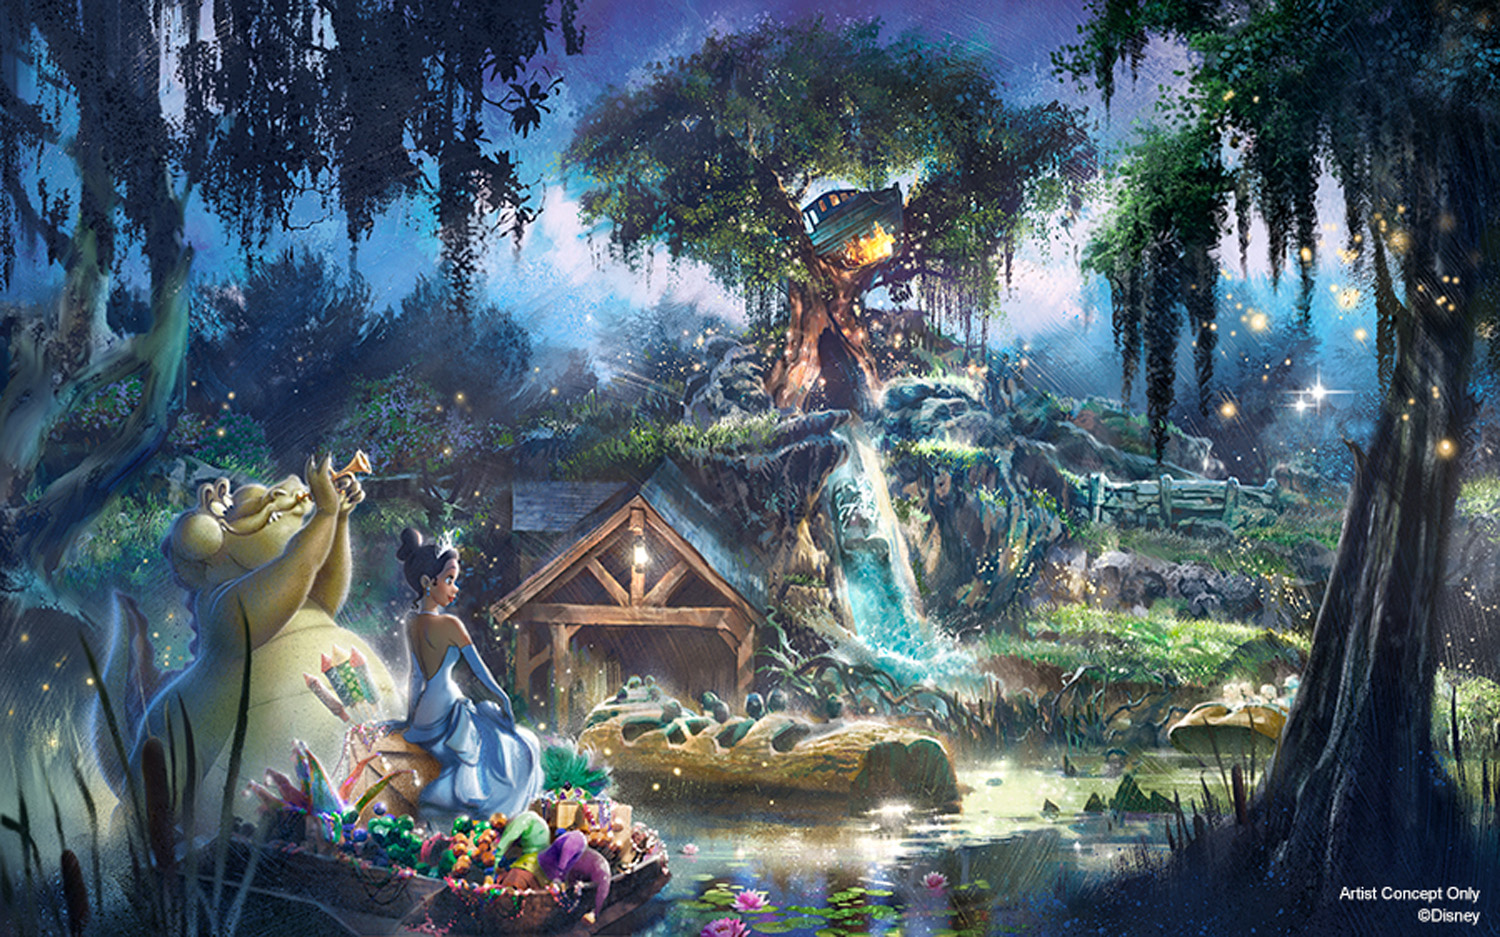 Disney's Splash Mountain Will Be Reimagined With Princess and the Frog